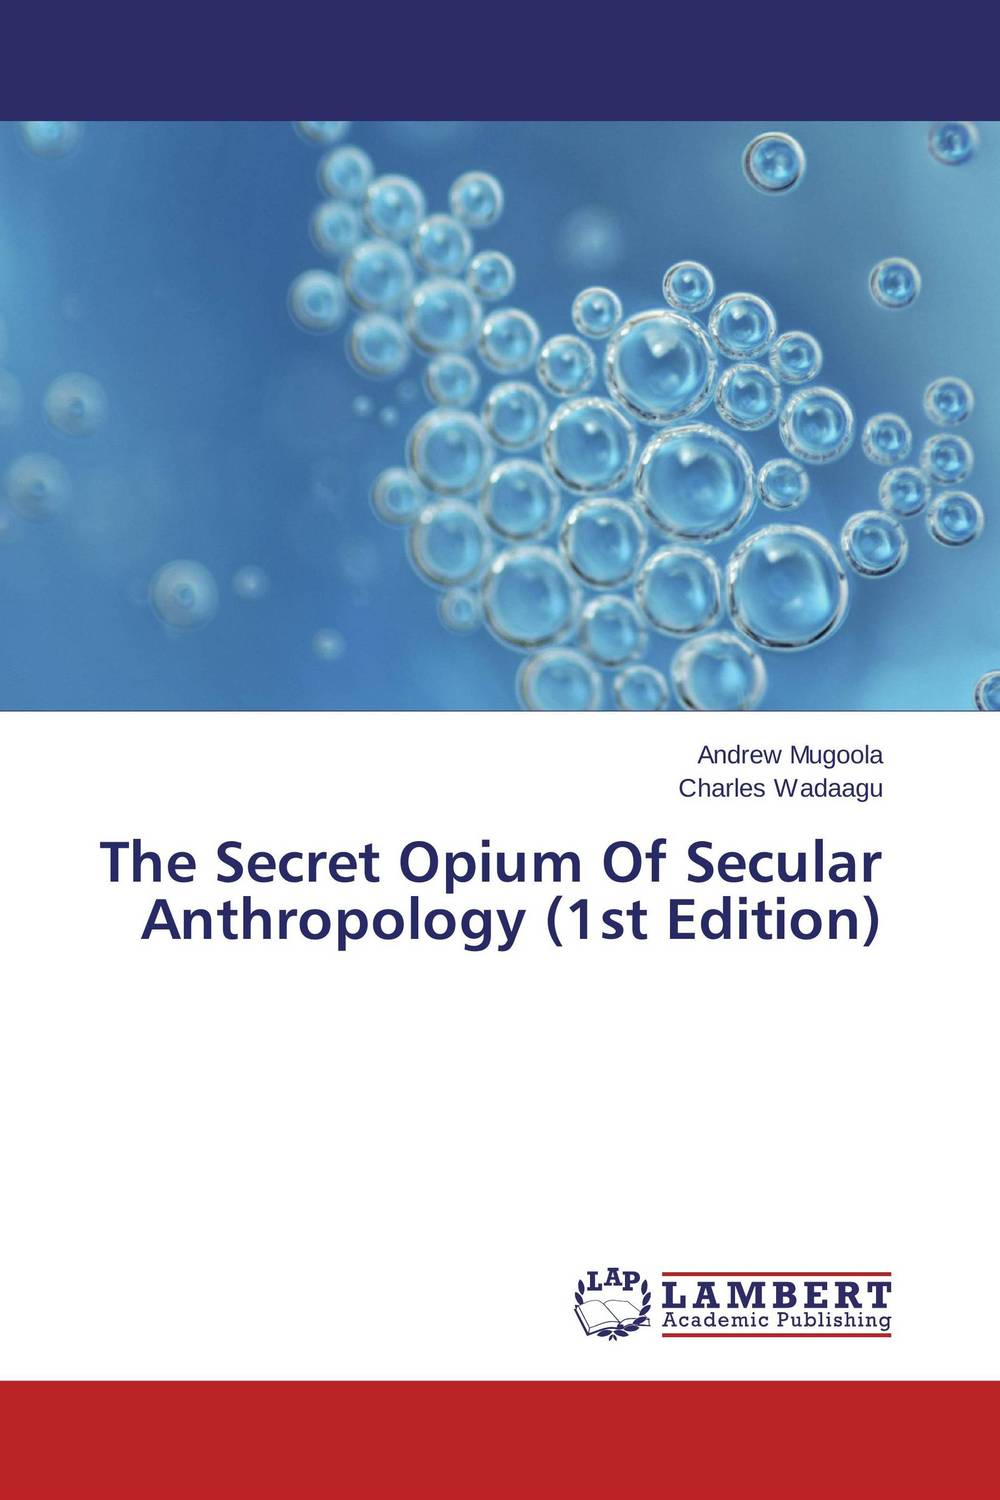 The Secret Opium Of Secular Anthropology (1st Edition) marc lane j the mission driven venture business solutions to the world s most vexing social problems